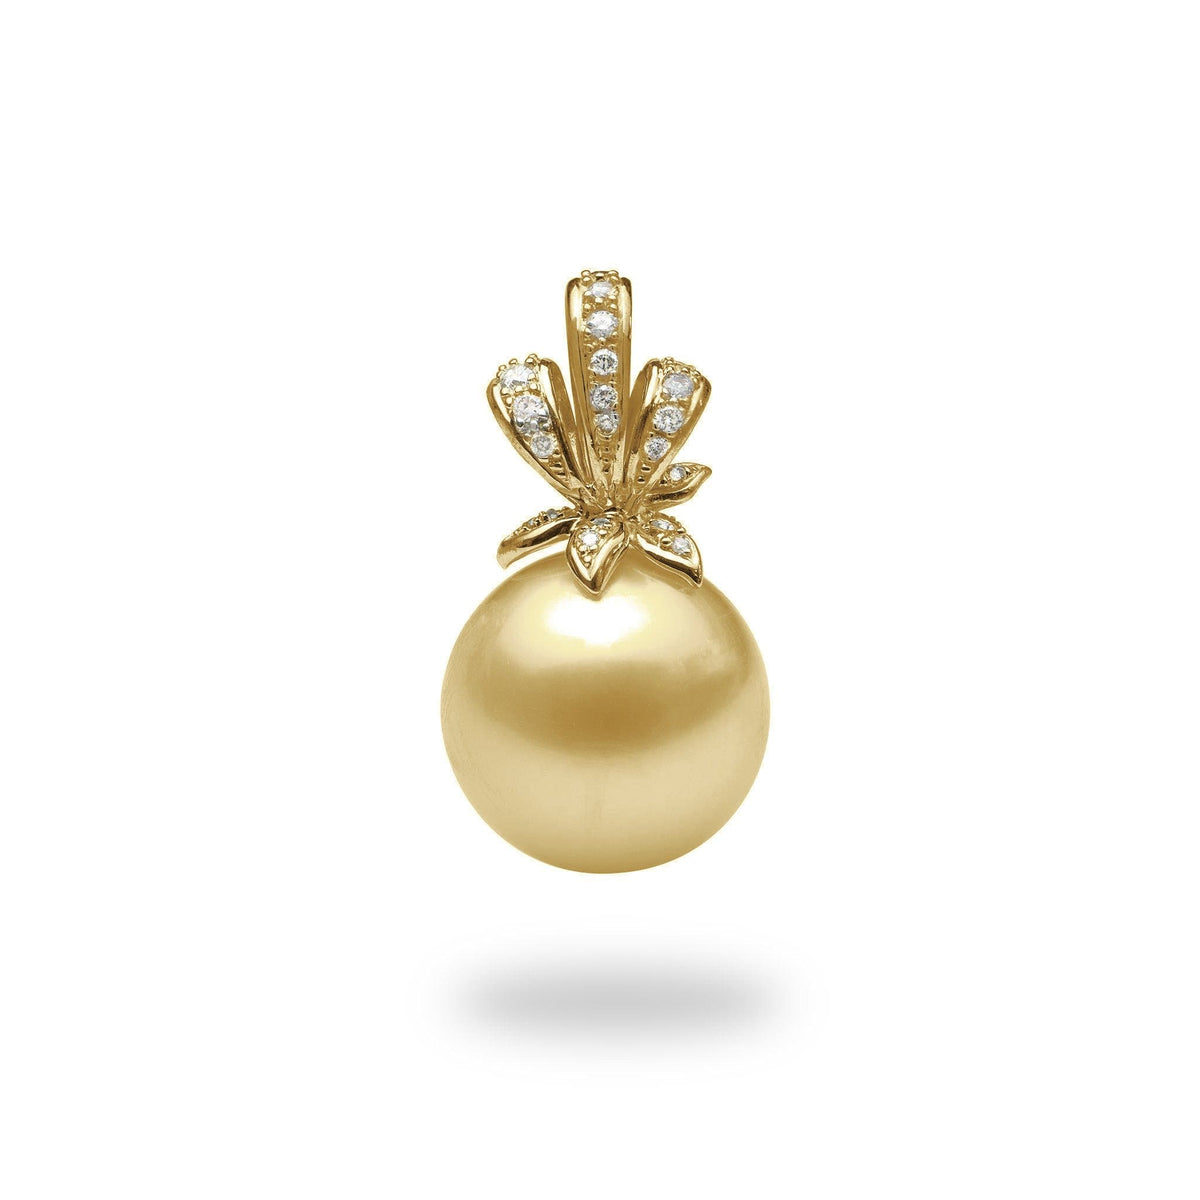 South Sea Golden Pearl Pendant in 14K Yellow Gold with Diamonds